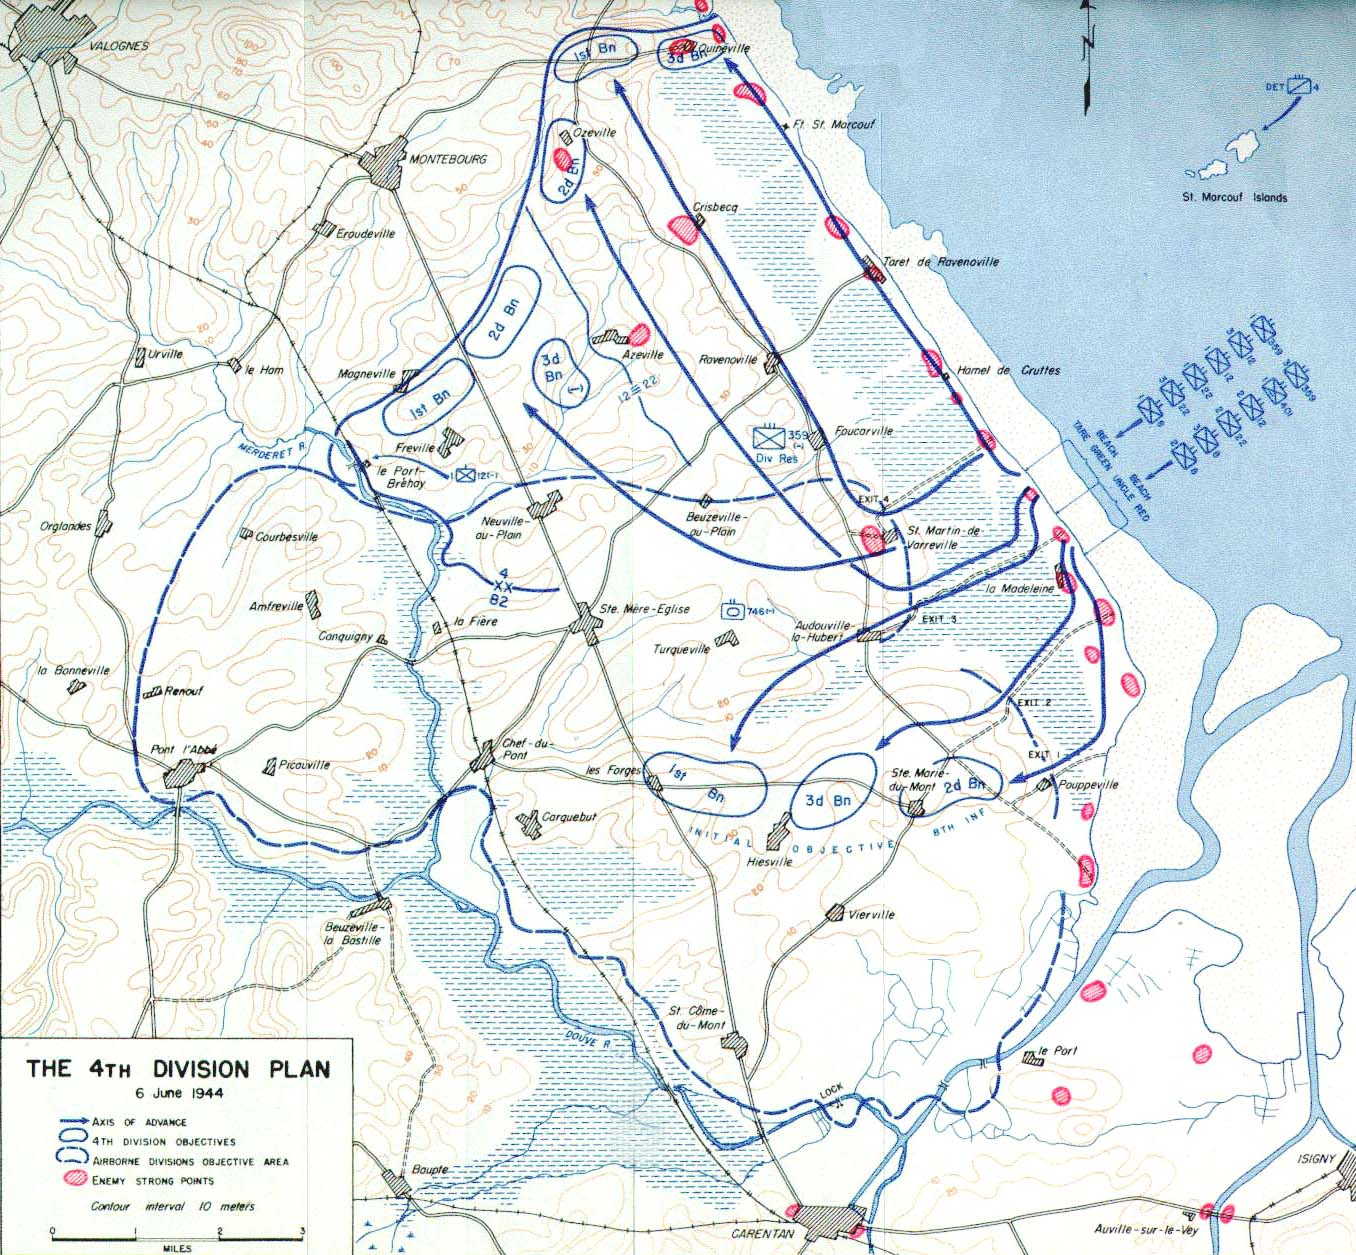 file map of plan for us 4th division d day 6 june